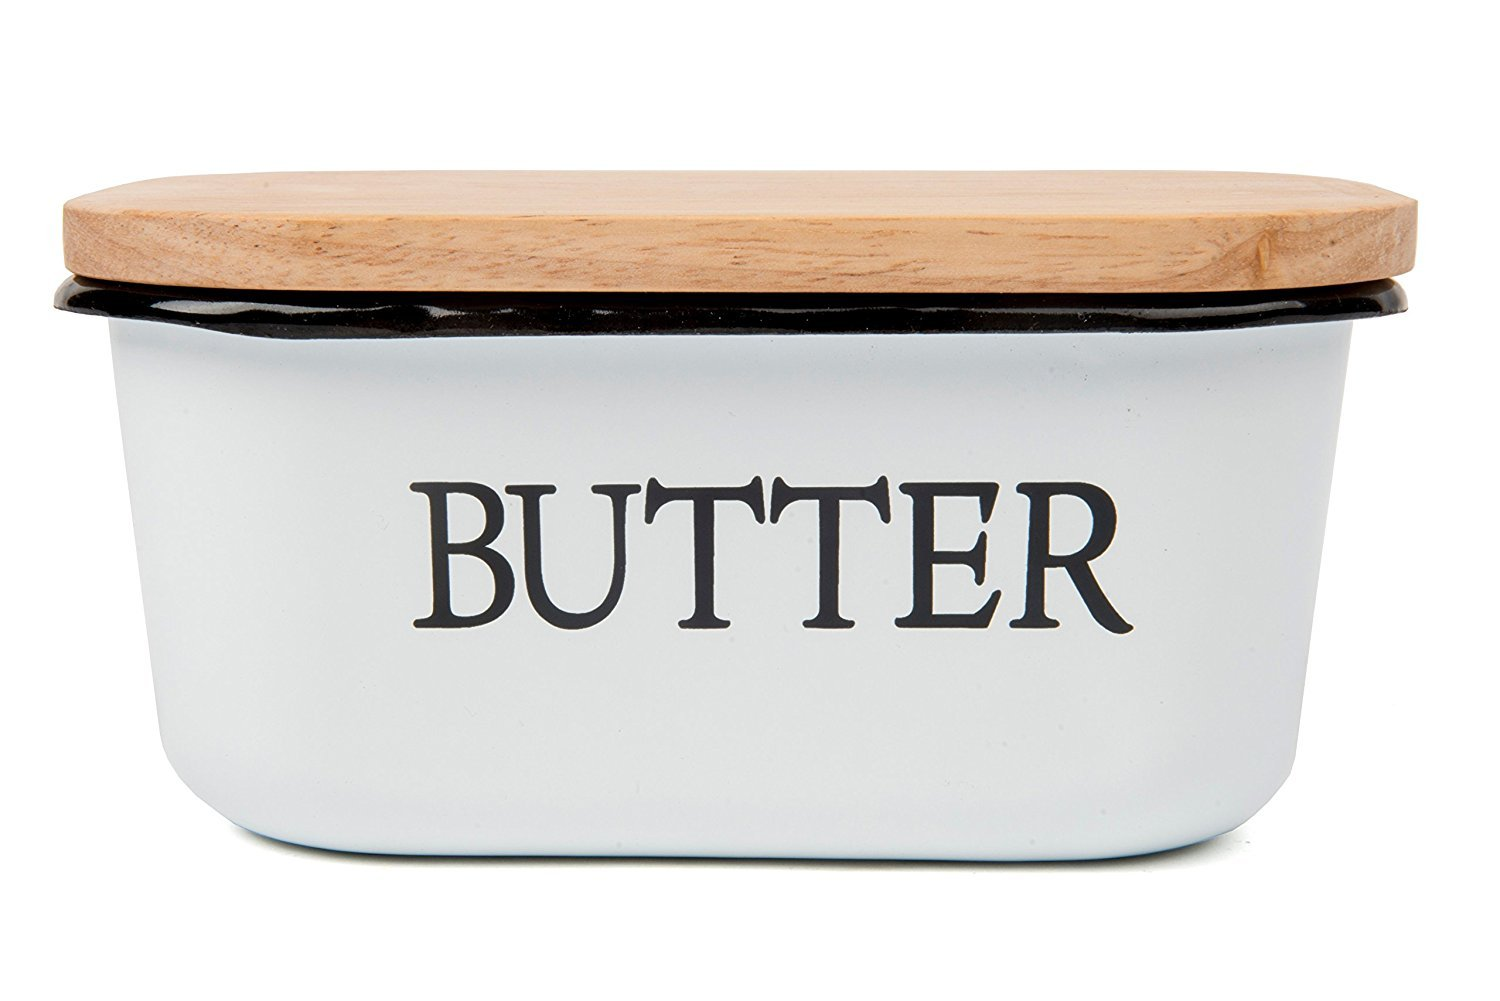 Butter Dish- Enamel Butter Boat with Wooden Lid-Quality & Elegant Design Holds Up To 1 Pound Of Butter PalkSky